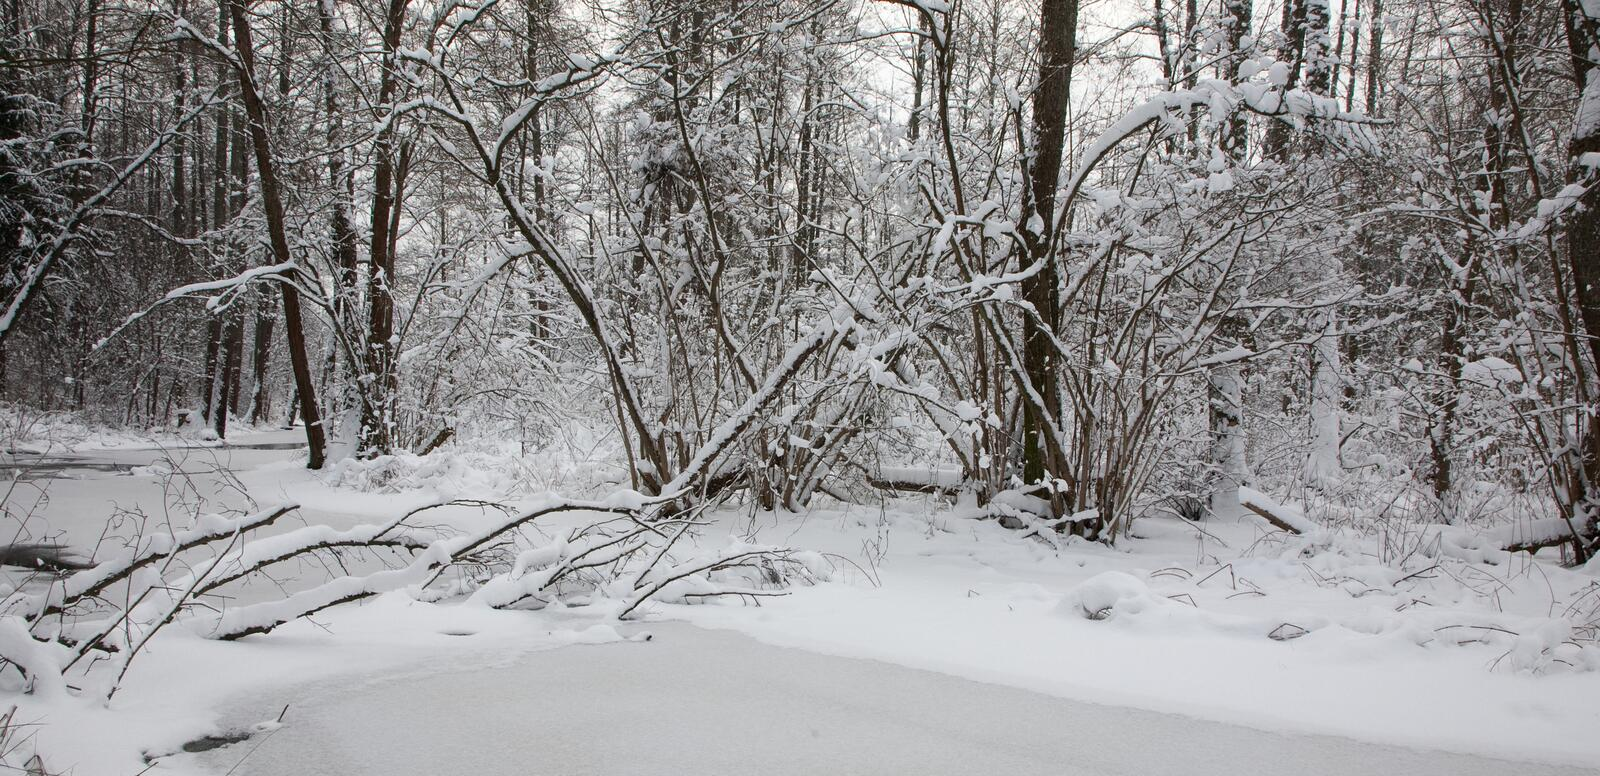 Snowy riparian forest over partly frozen river stock images